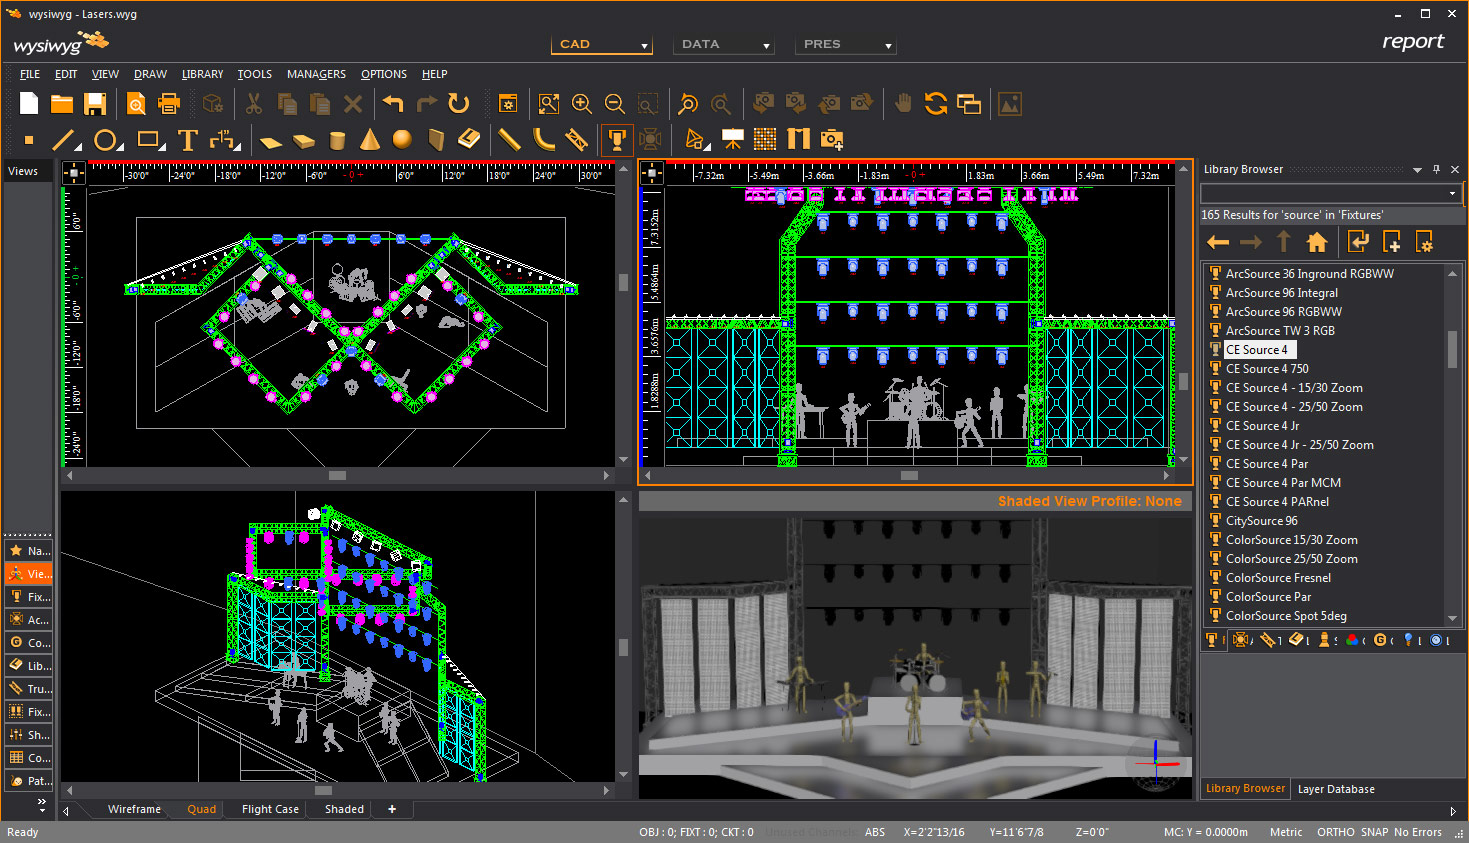 wysiwyg Report version. Quad Mode showing newly added isometric and shaded view.